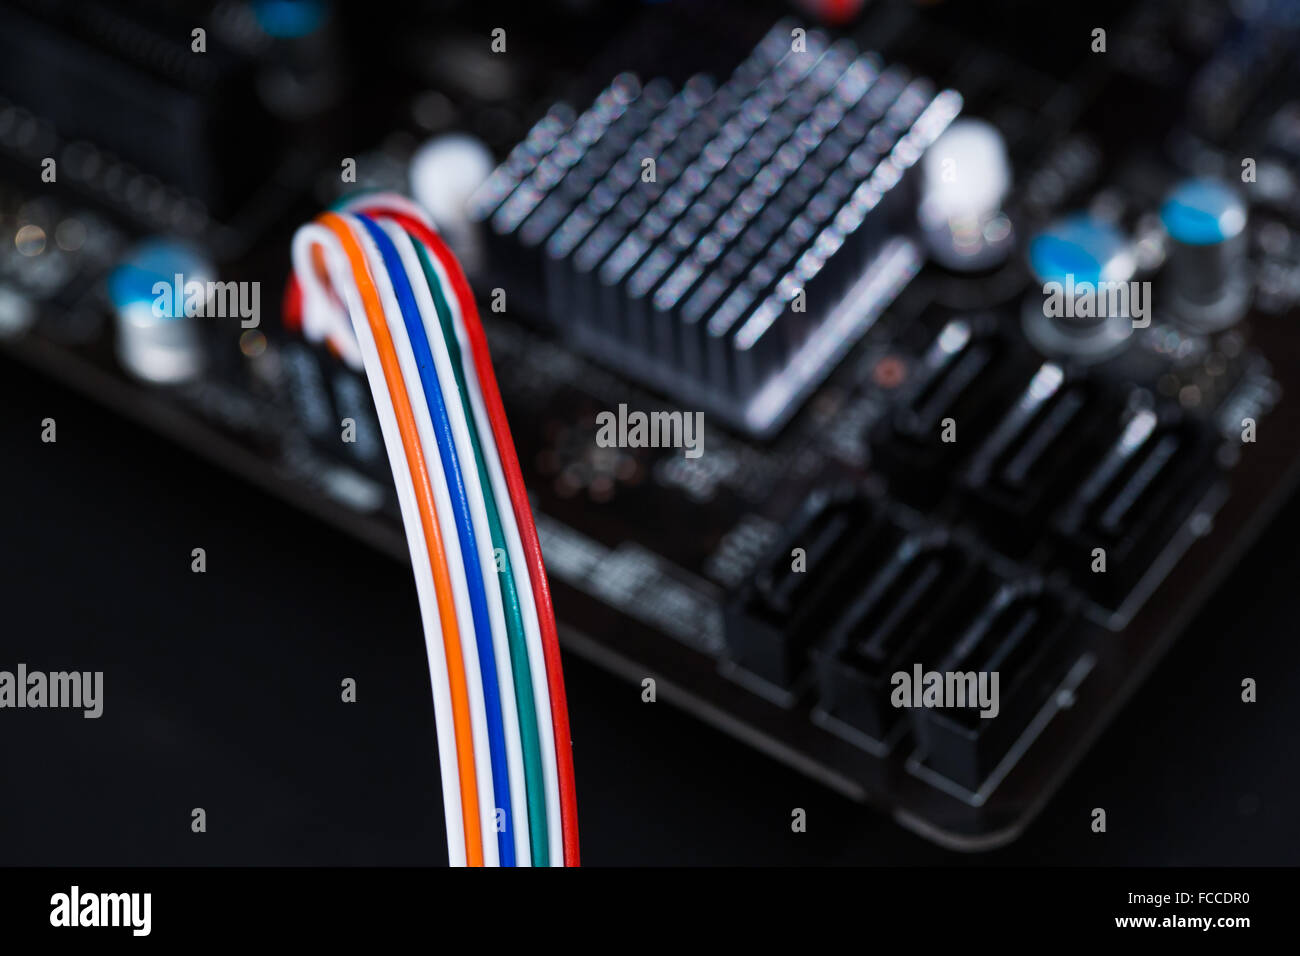 Ethernet and wiring for computers and mainframes. - Stock Image